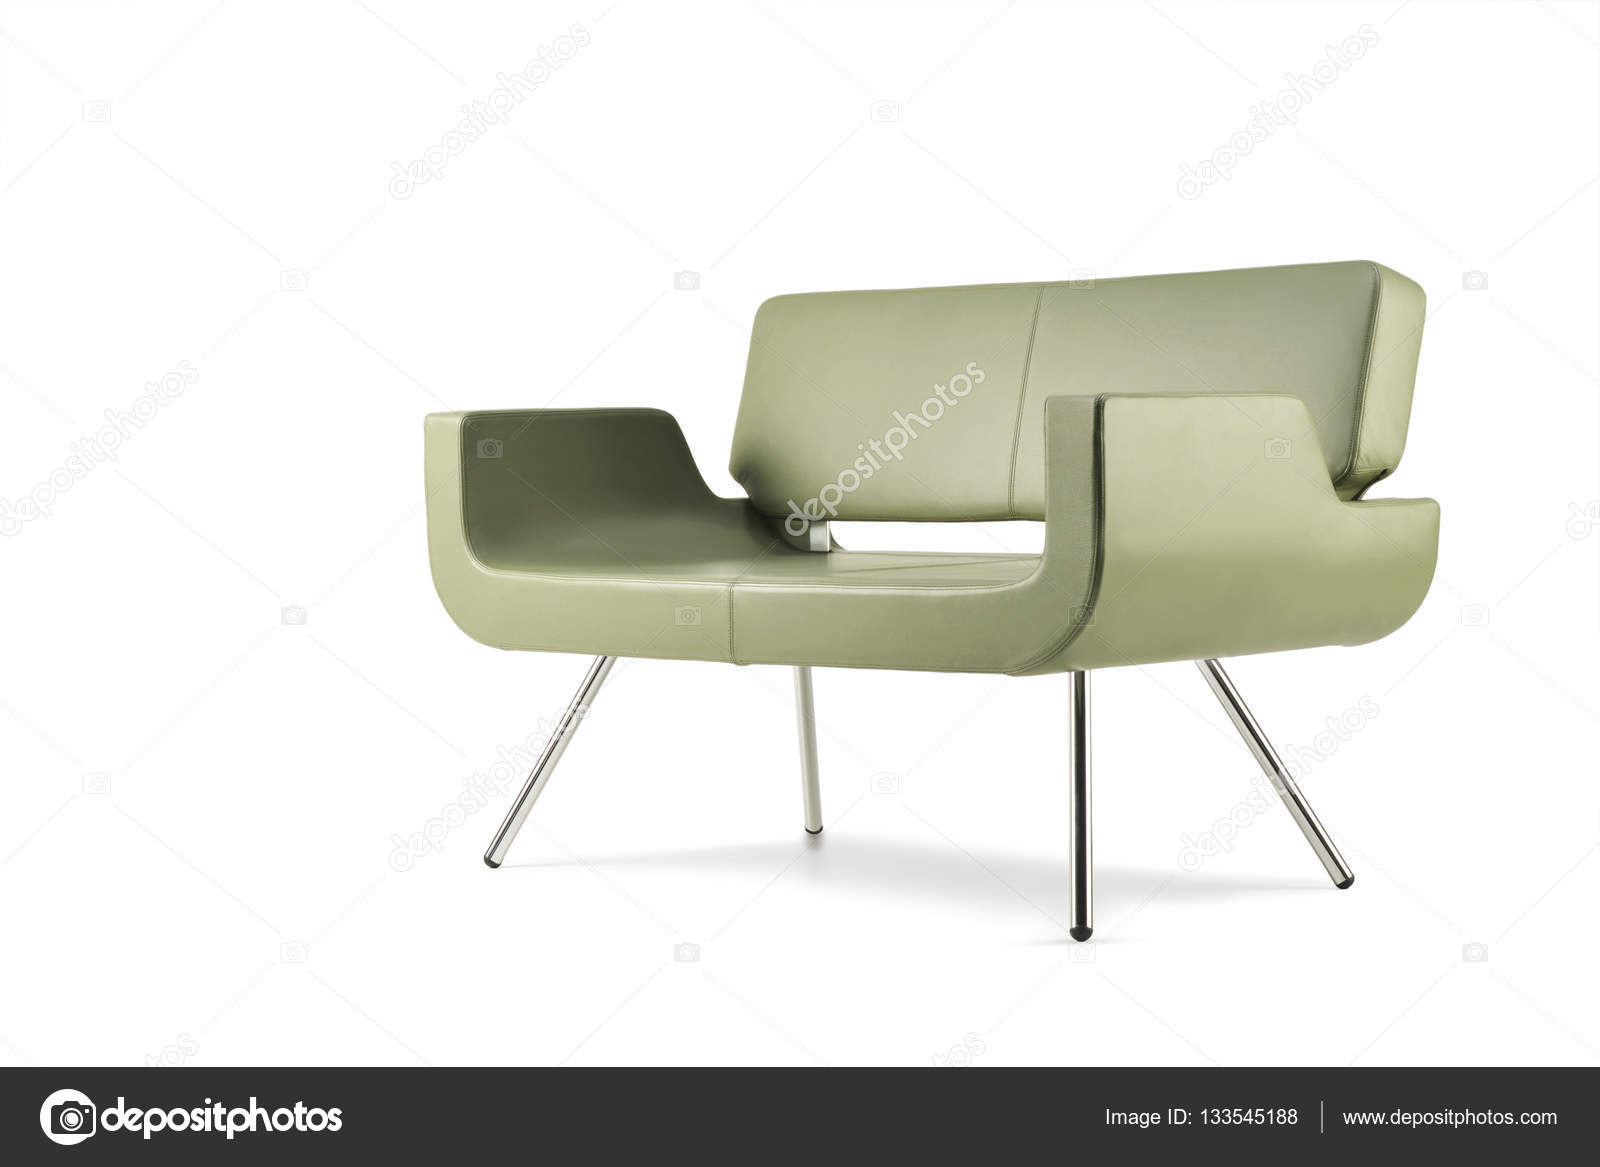 Miraculous Green Leather Sofa Side View Stock Photo C Antoniotruzzi Machost Co Dining Chair Design Ideas Machostcouk